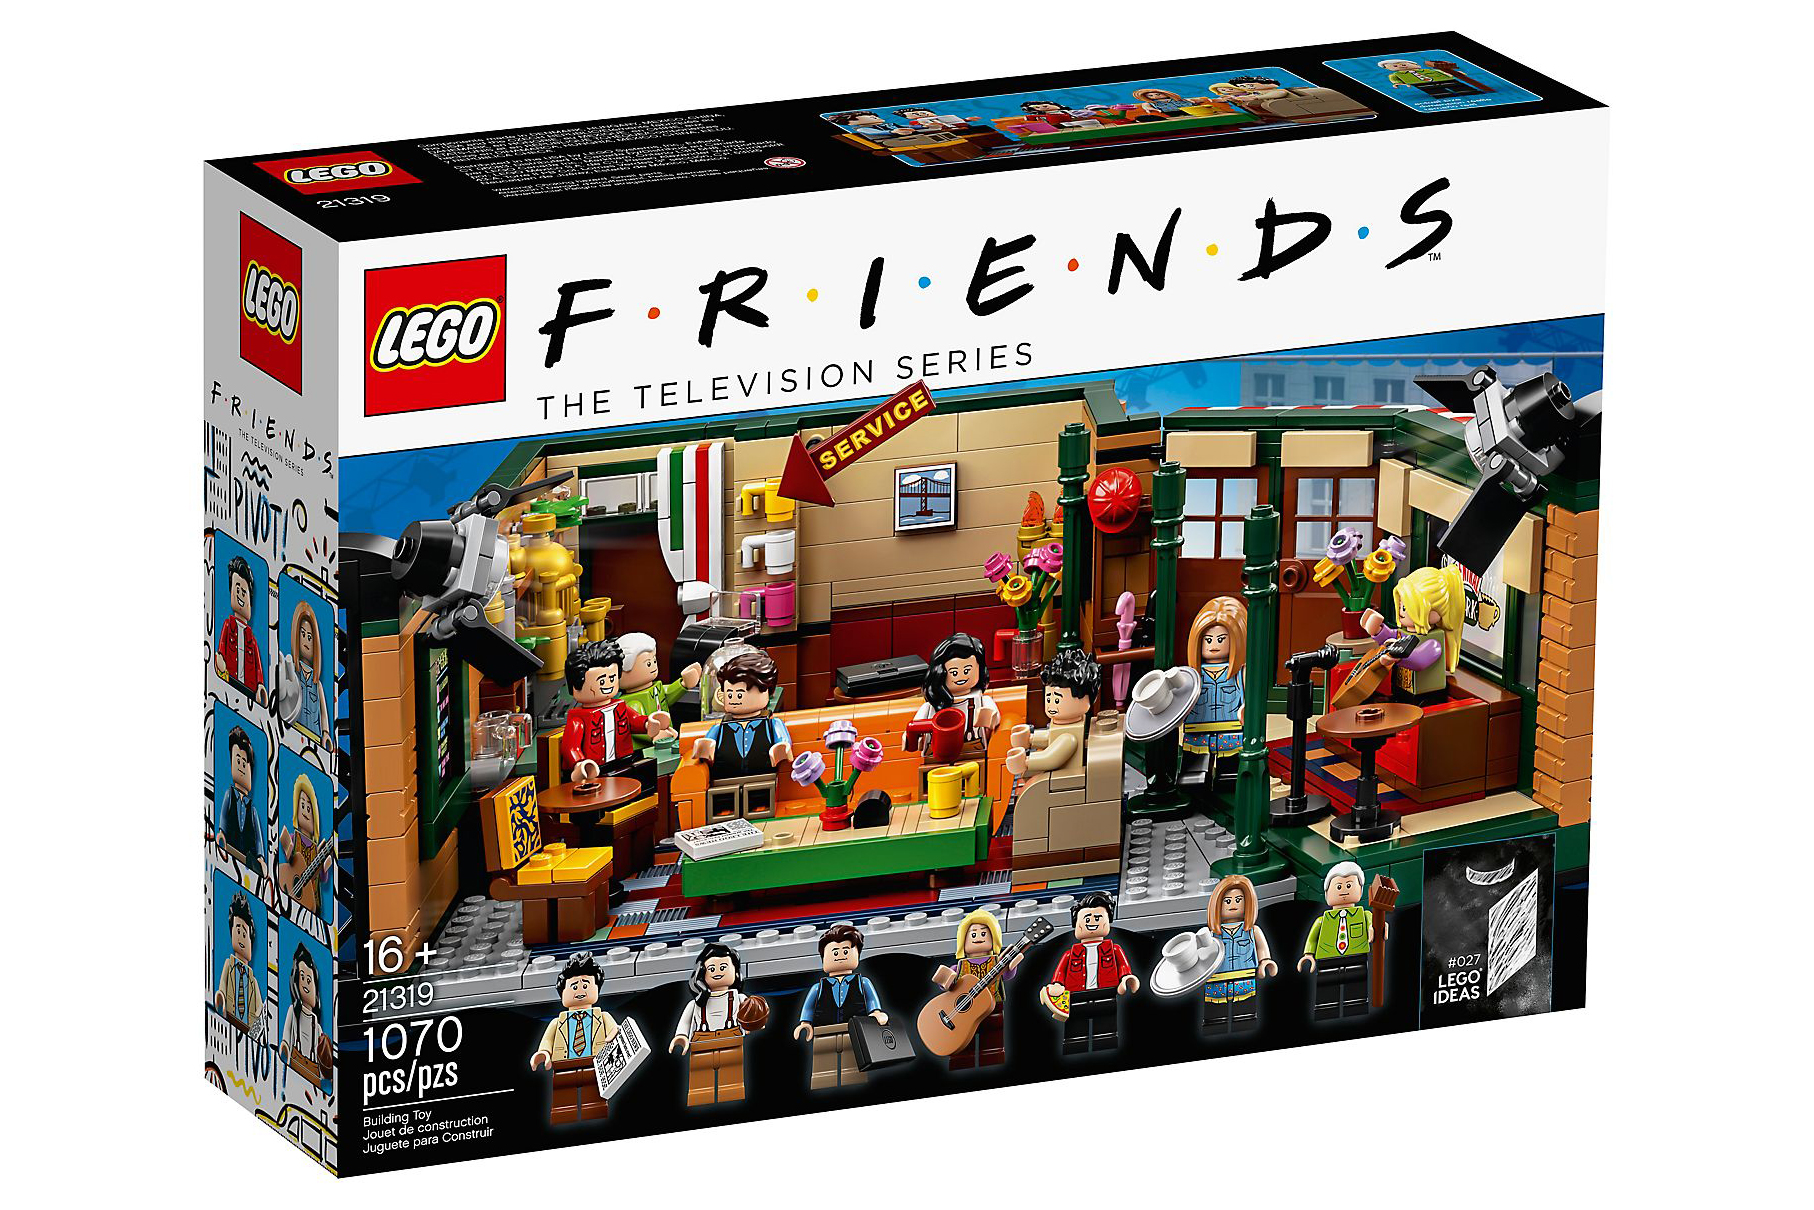 Lego's 'Friends' set is the obvious collab we should have seen coming